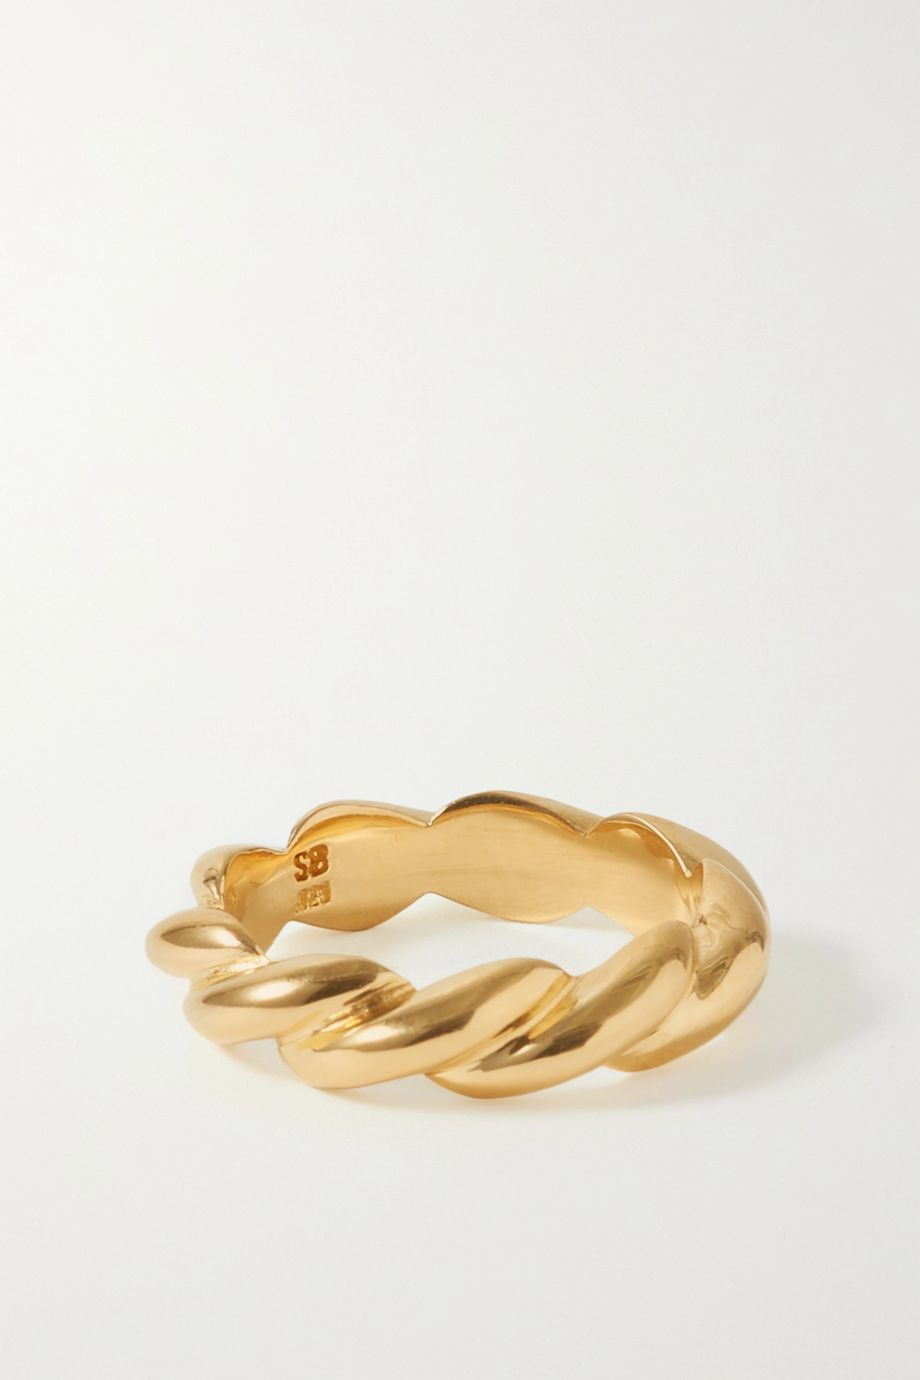 Sophie Buhai + NET SUSTAIN gold vermeil ring